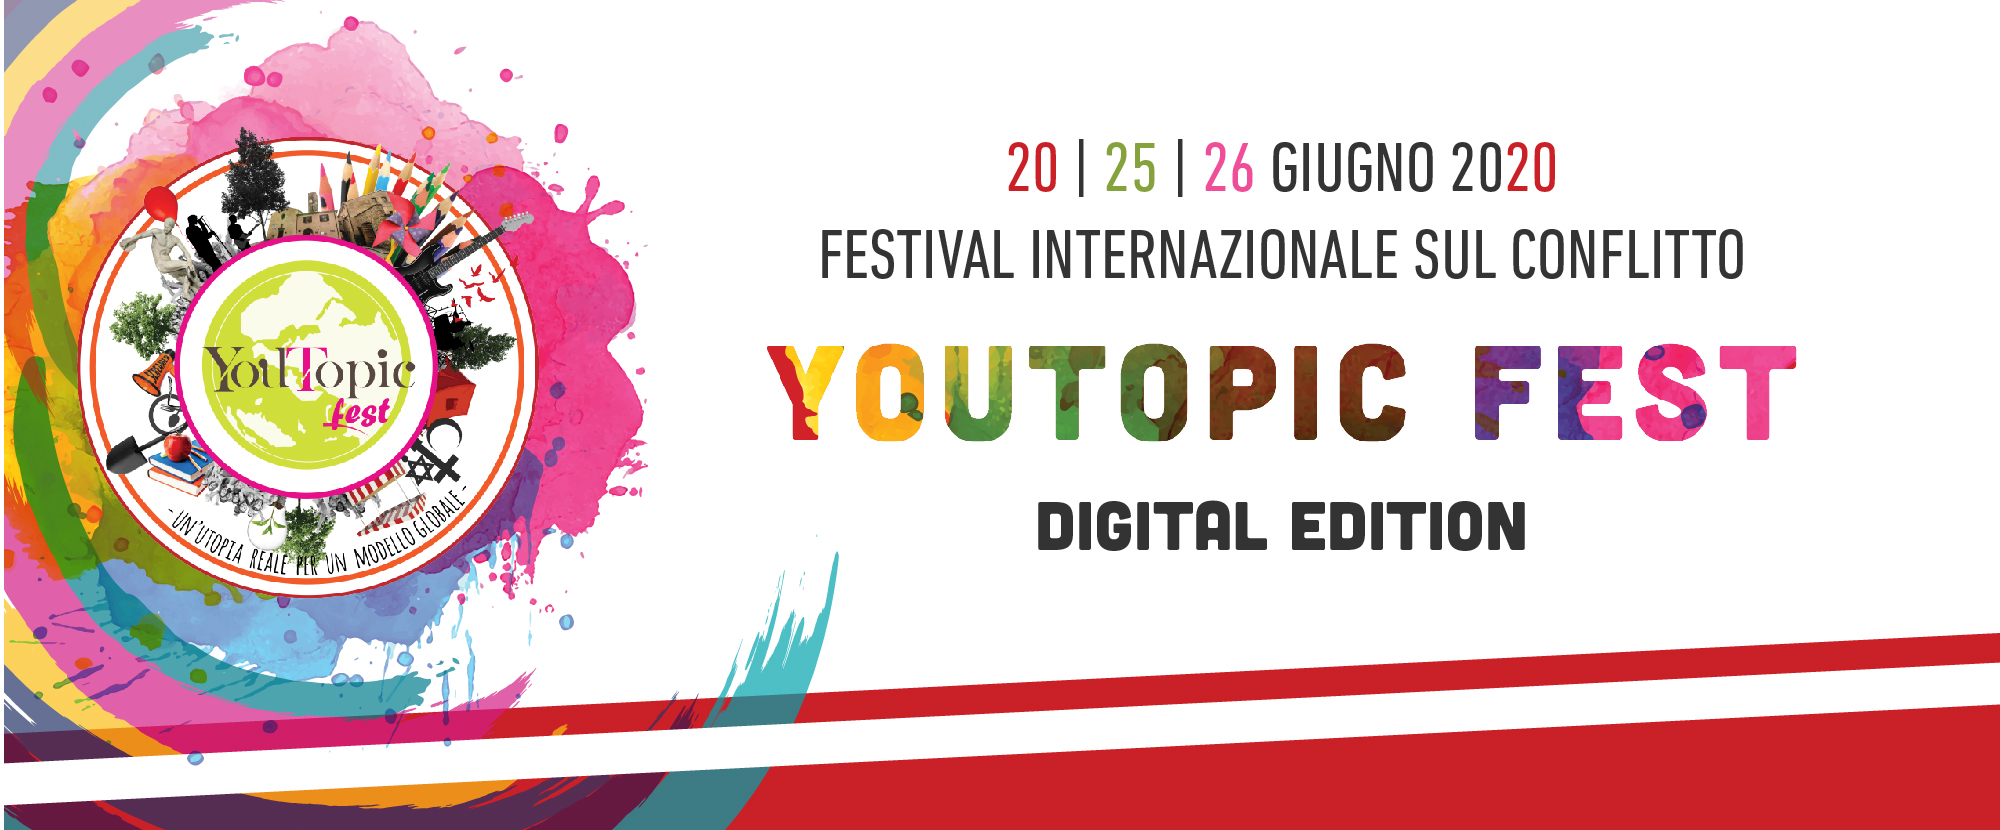 YouTopic Fest 2020: Digital Edition | 20 | 25 | 26 Giugno